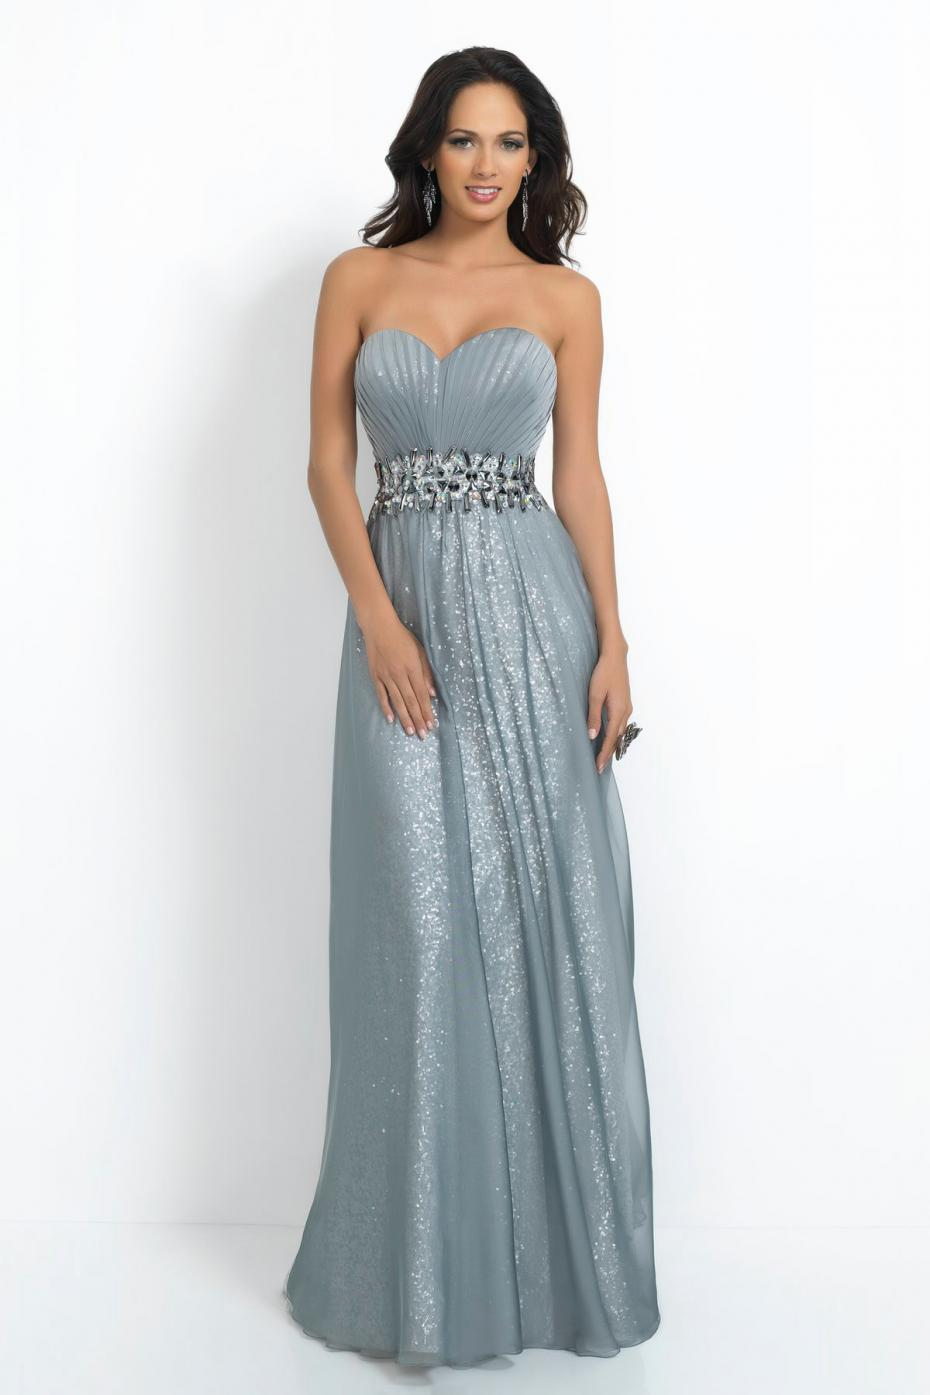 Online get cheap grey chiffon bridesmaid dress sequins aliexpress sweetheart sleeveless floor length sash beaded sequin chiffon long grey sparkly convertible bridesmaid dresses ombrellifo Gallery